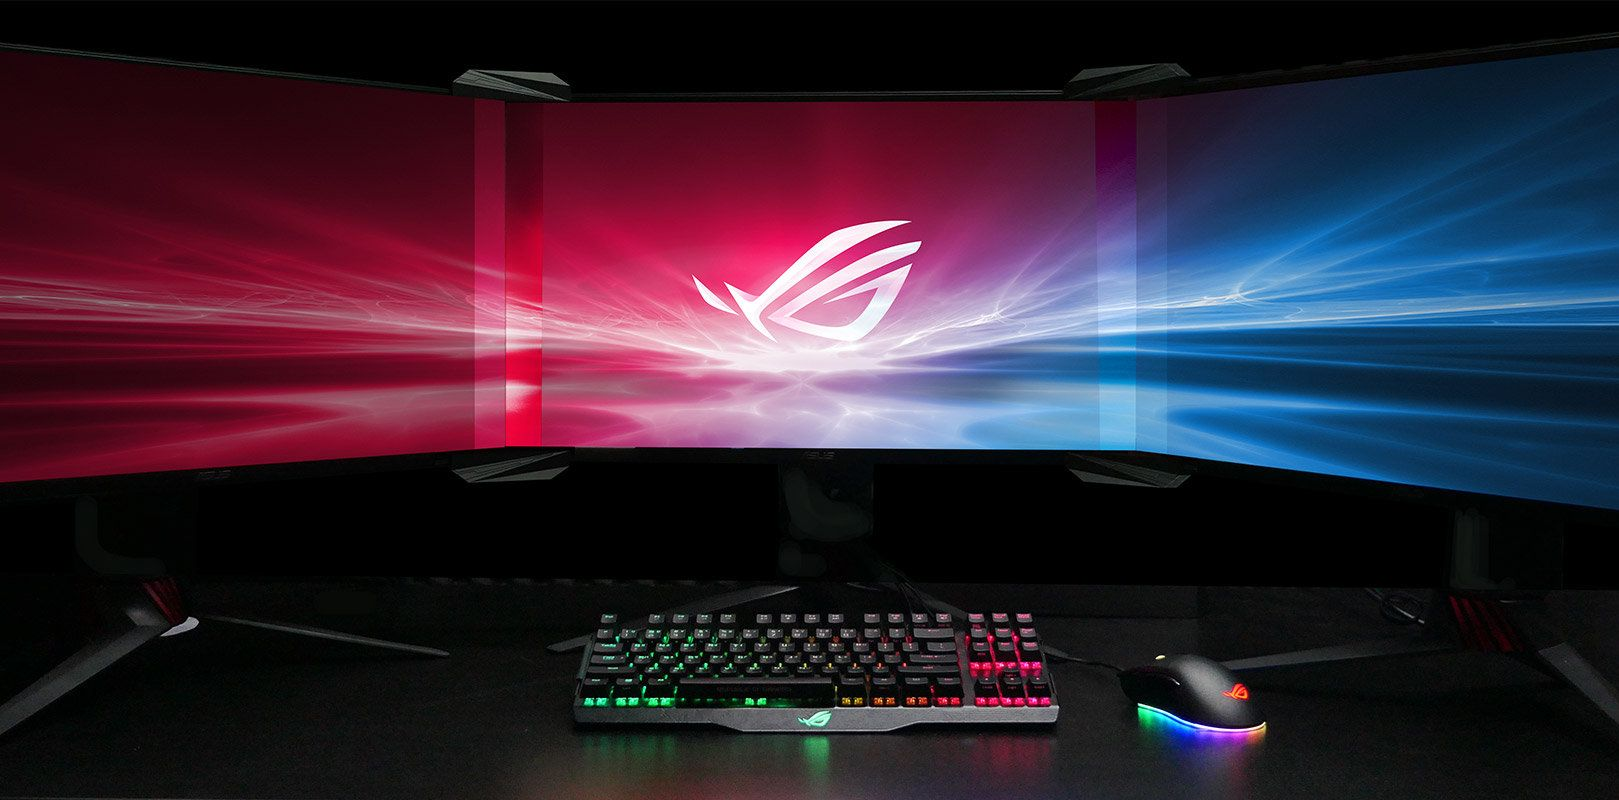 Asus has designed the lenses to mask the space between the monitors